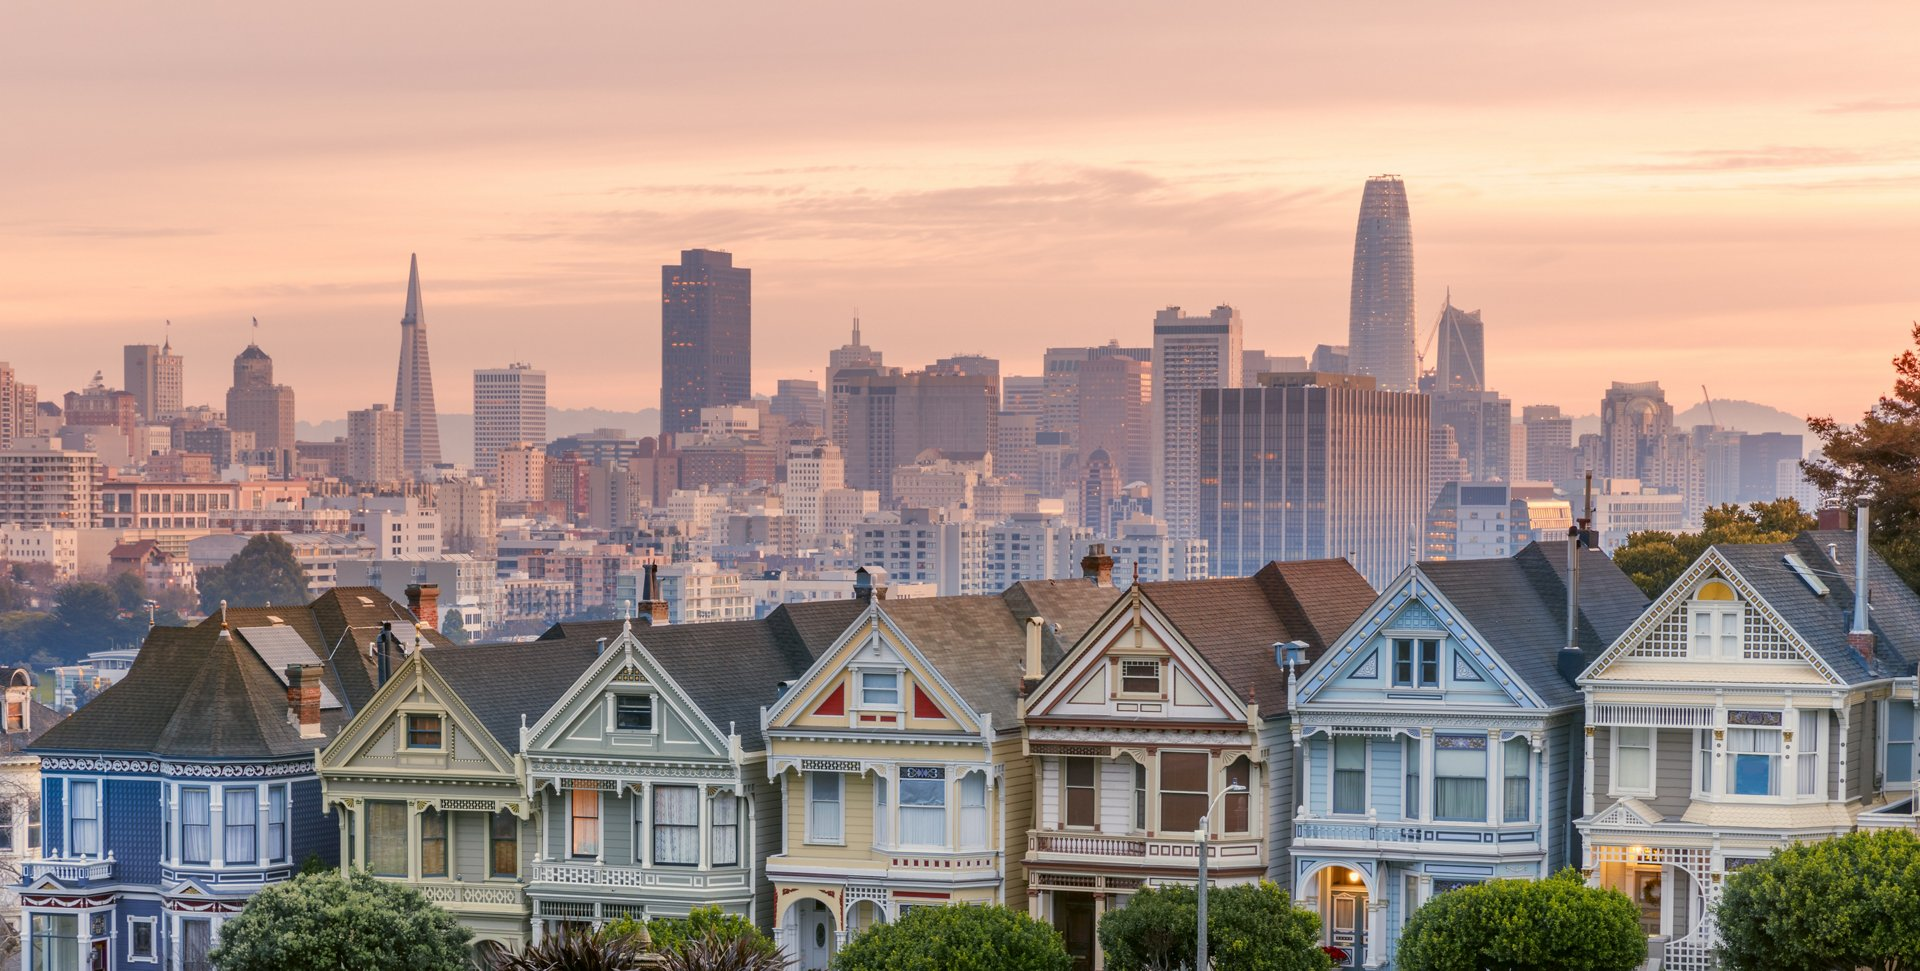 San Francisco - California, Urban Skyline, Street, City, USA. Salesforce Tower on the background.